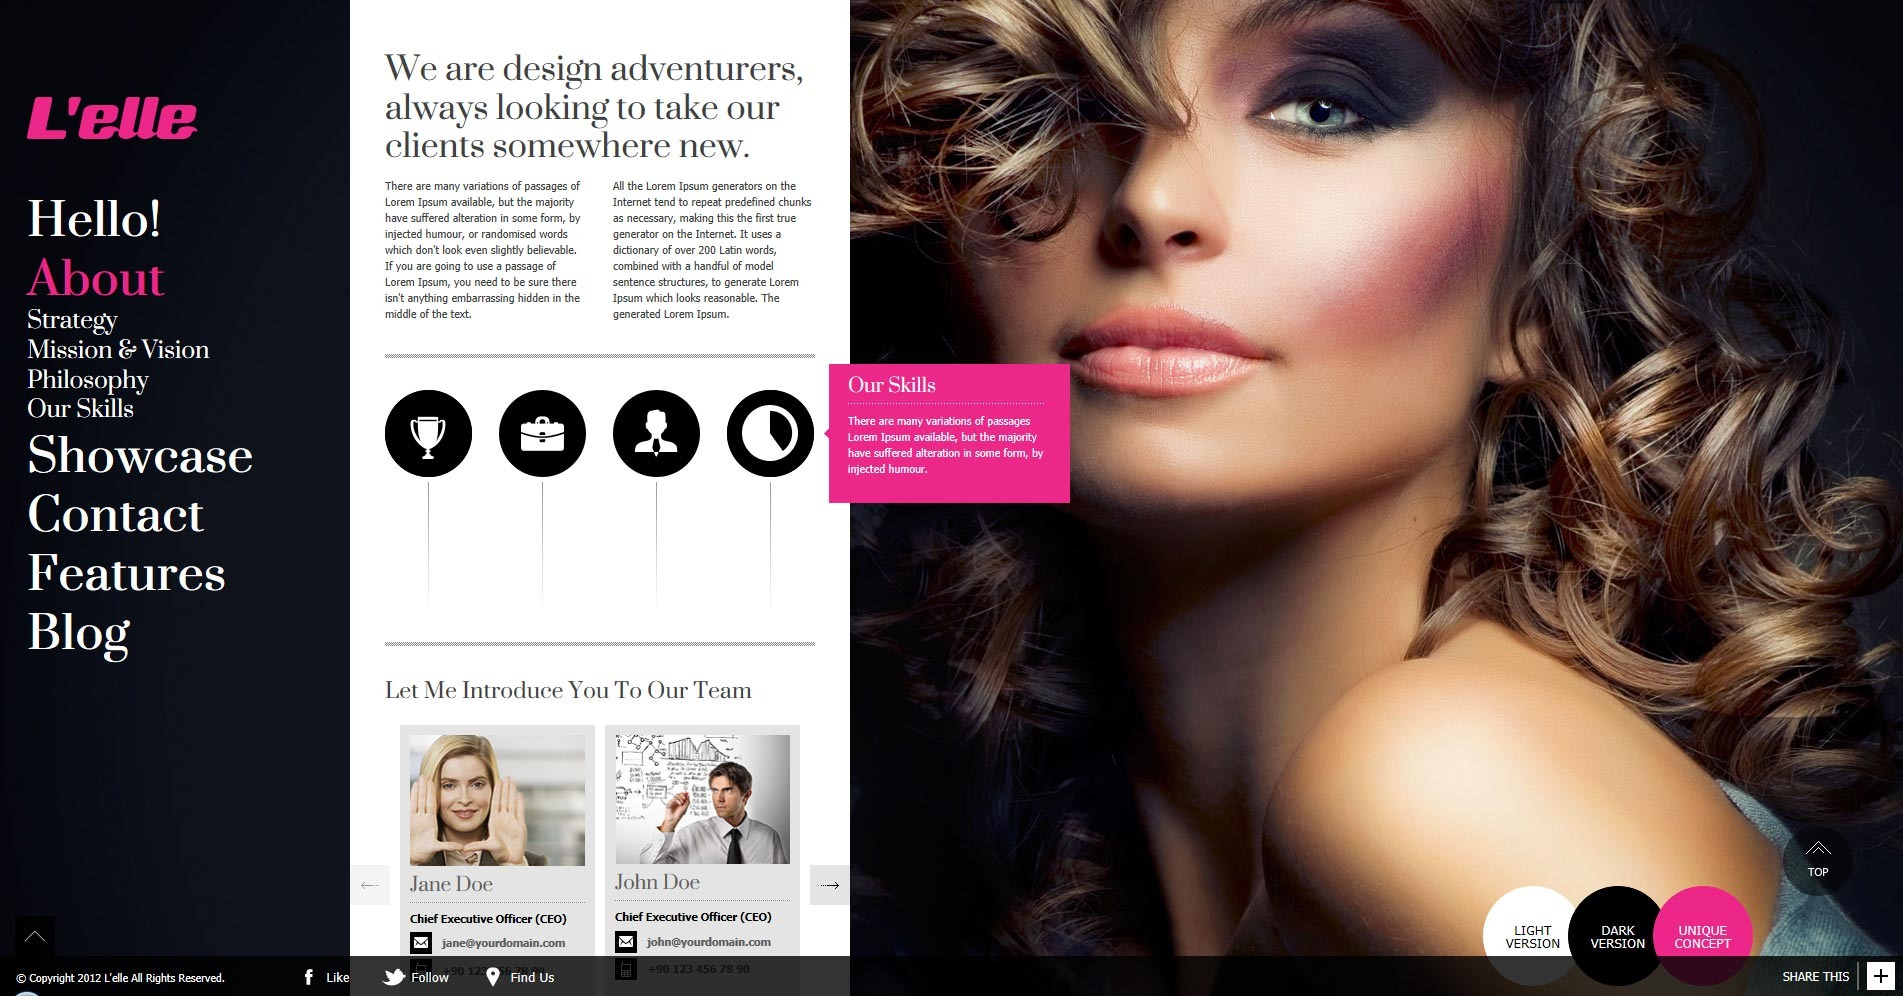 L'elle Creative Agency Showcase - about us section overall view + subitem buttons with tooltip appear